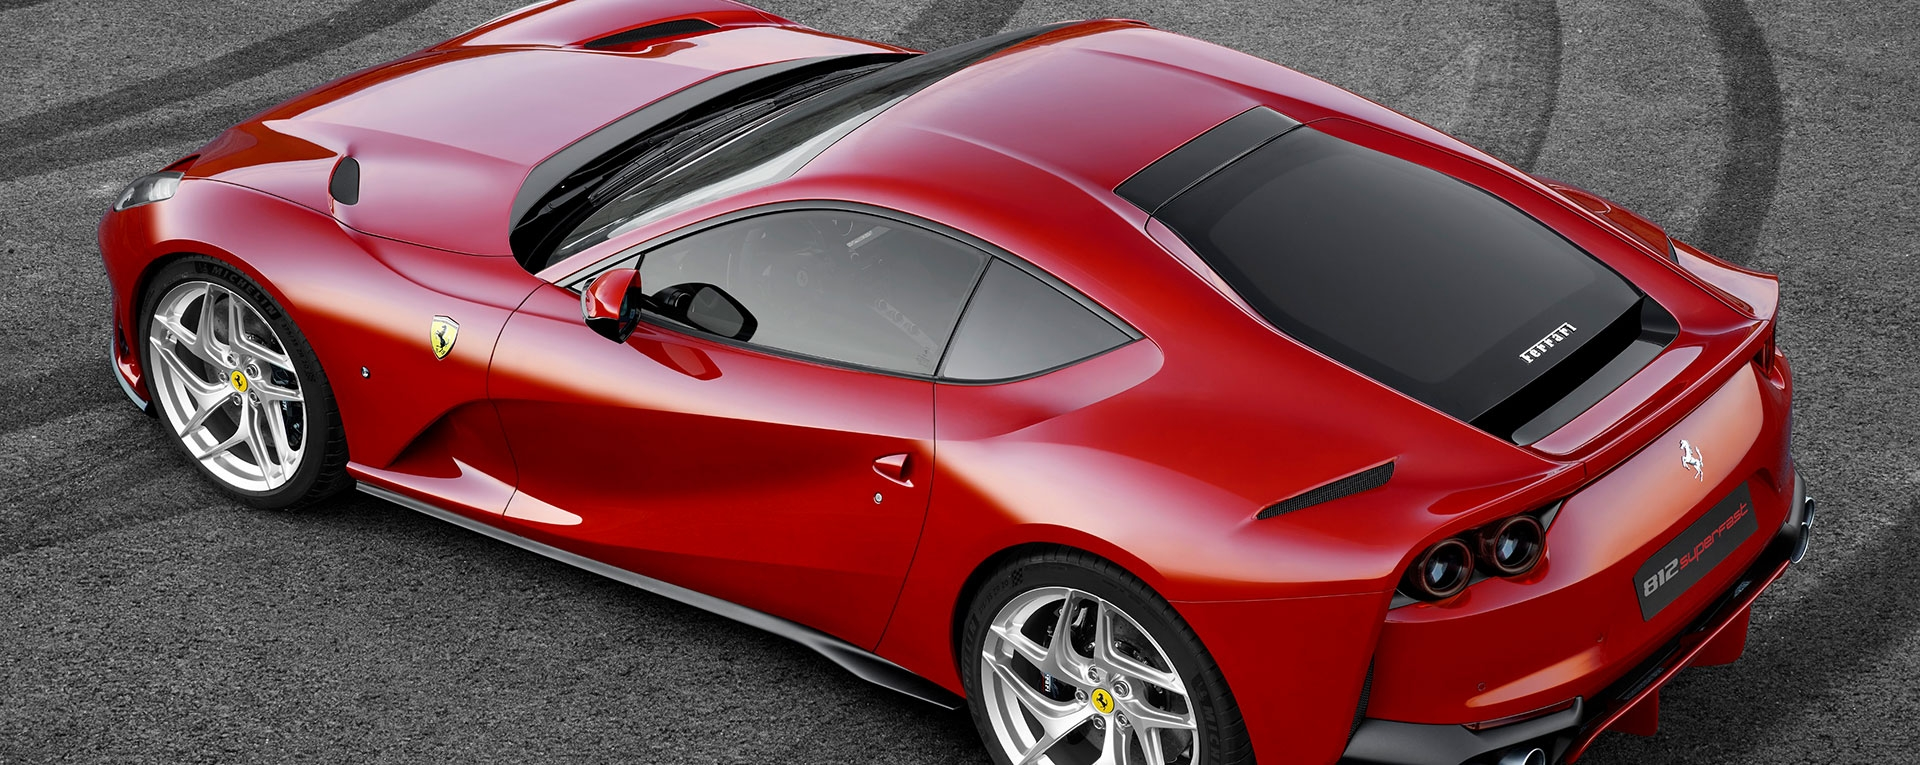 FERRARI 812 SUPERFAST Main Slide